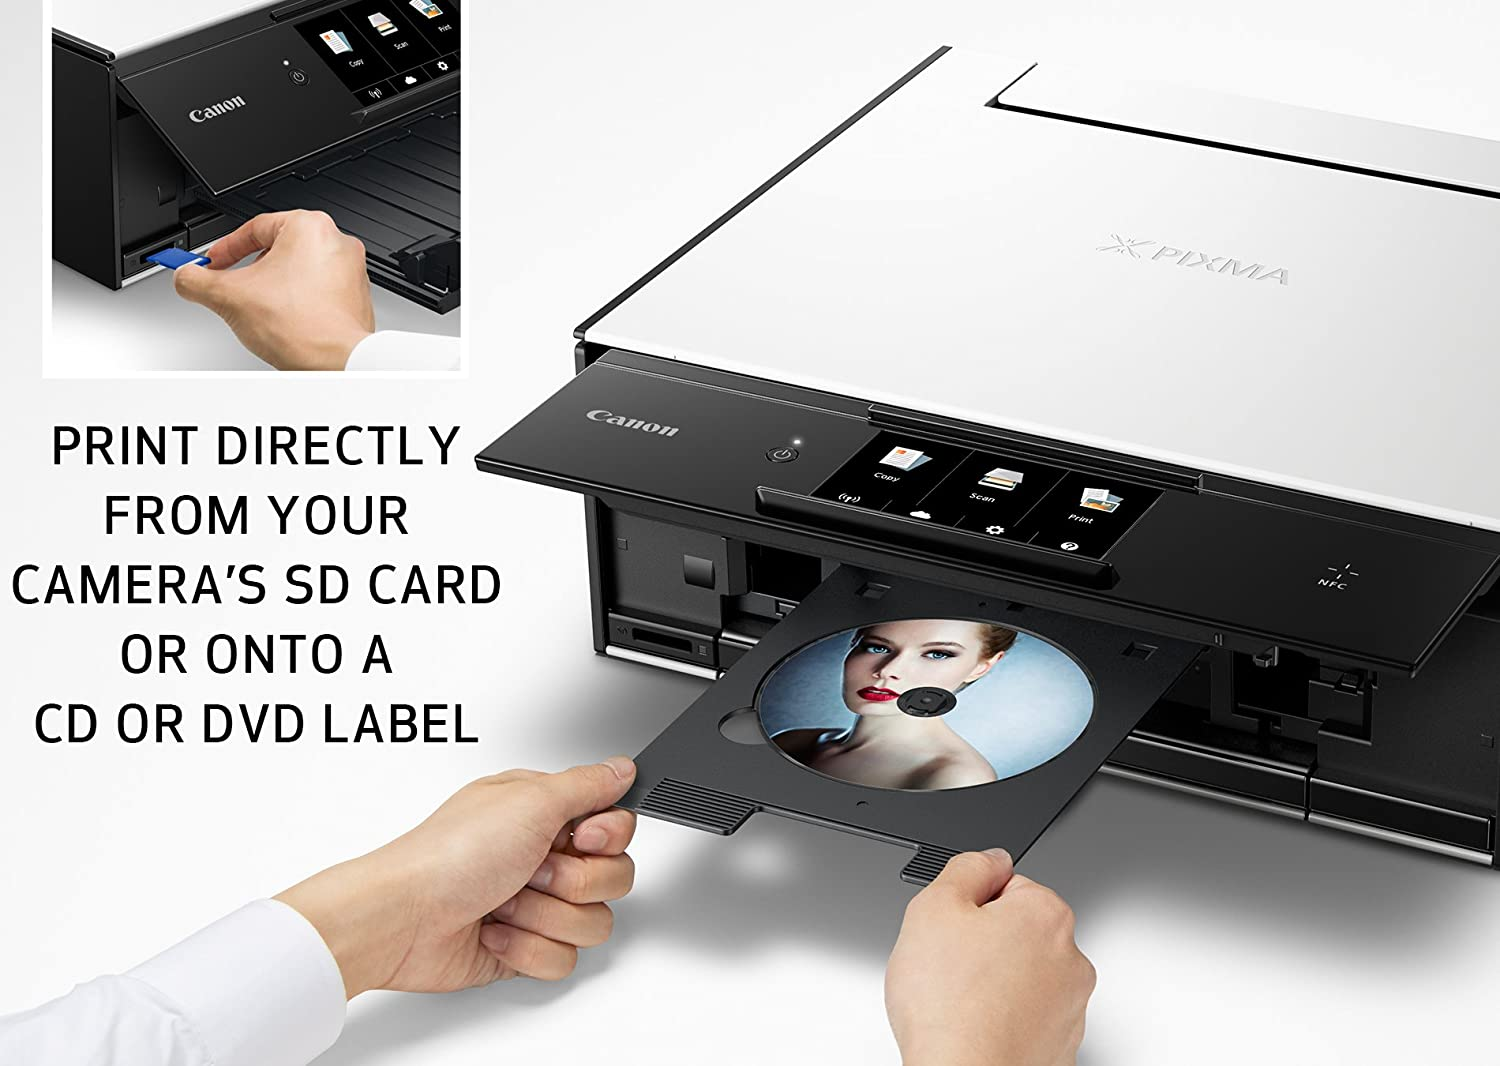 Canon Ts9020 Wireless All In One Printer With Scanner Hp 8500a Diagram And Copier Mobile Tablet Printing Airprint Google Cloud Print Compatible